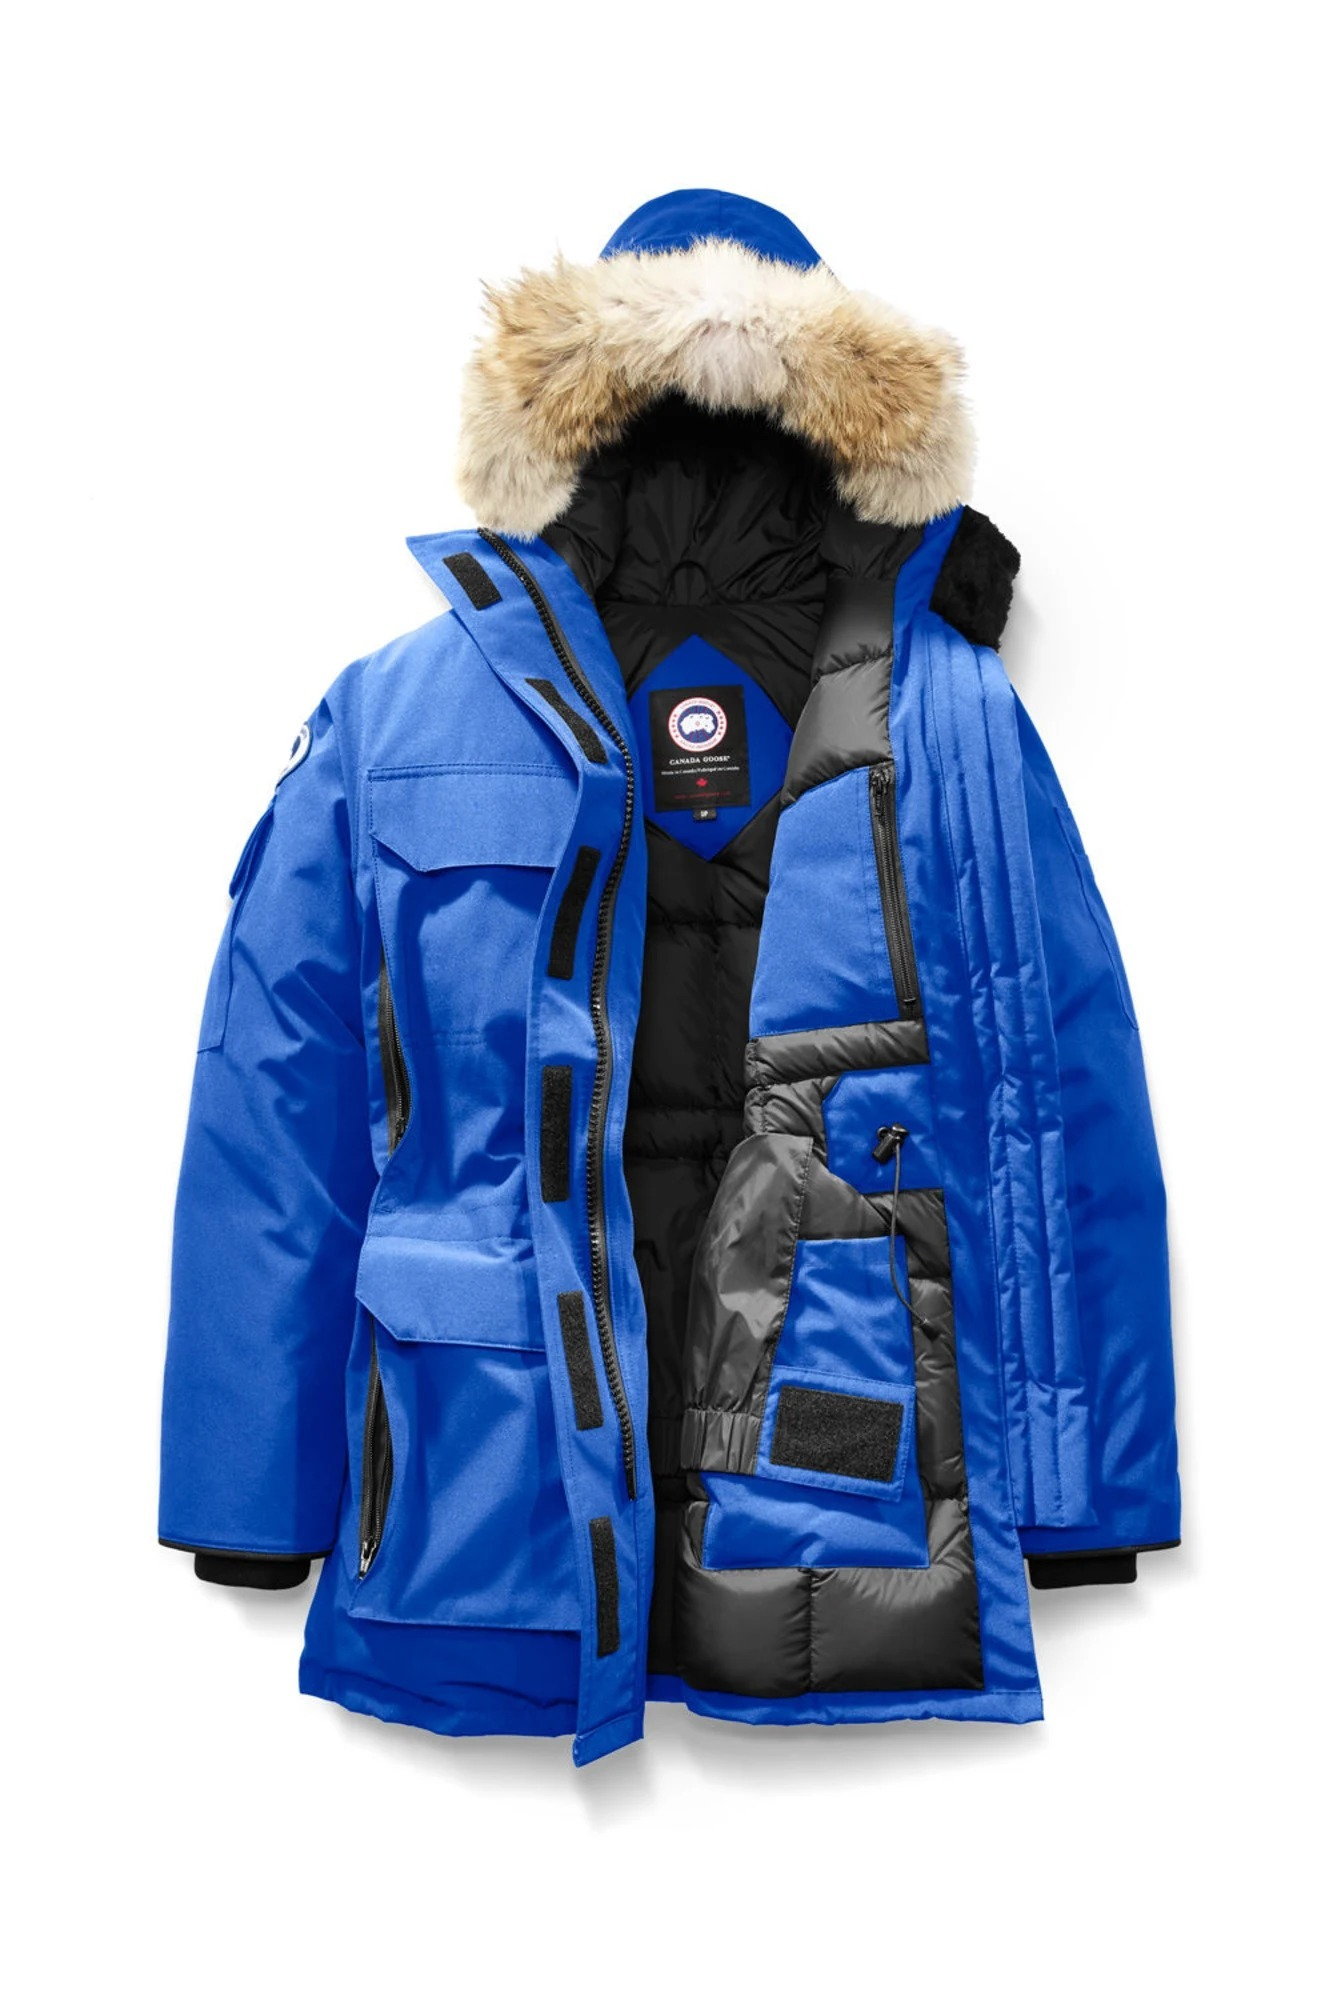 EXPEDITION PARKA WOMEN'S BLUE 4570